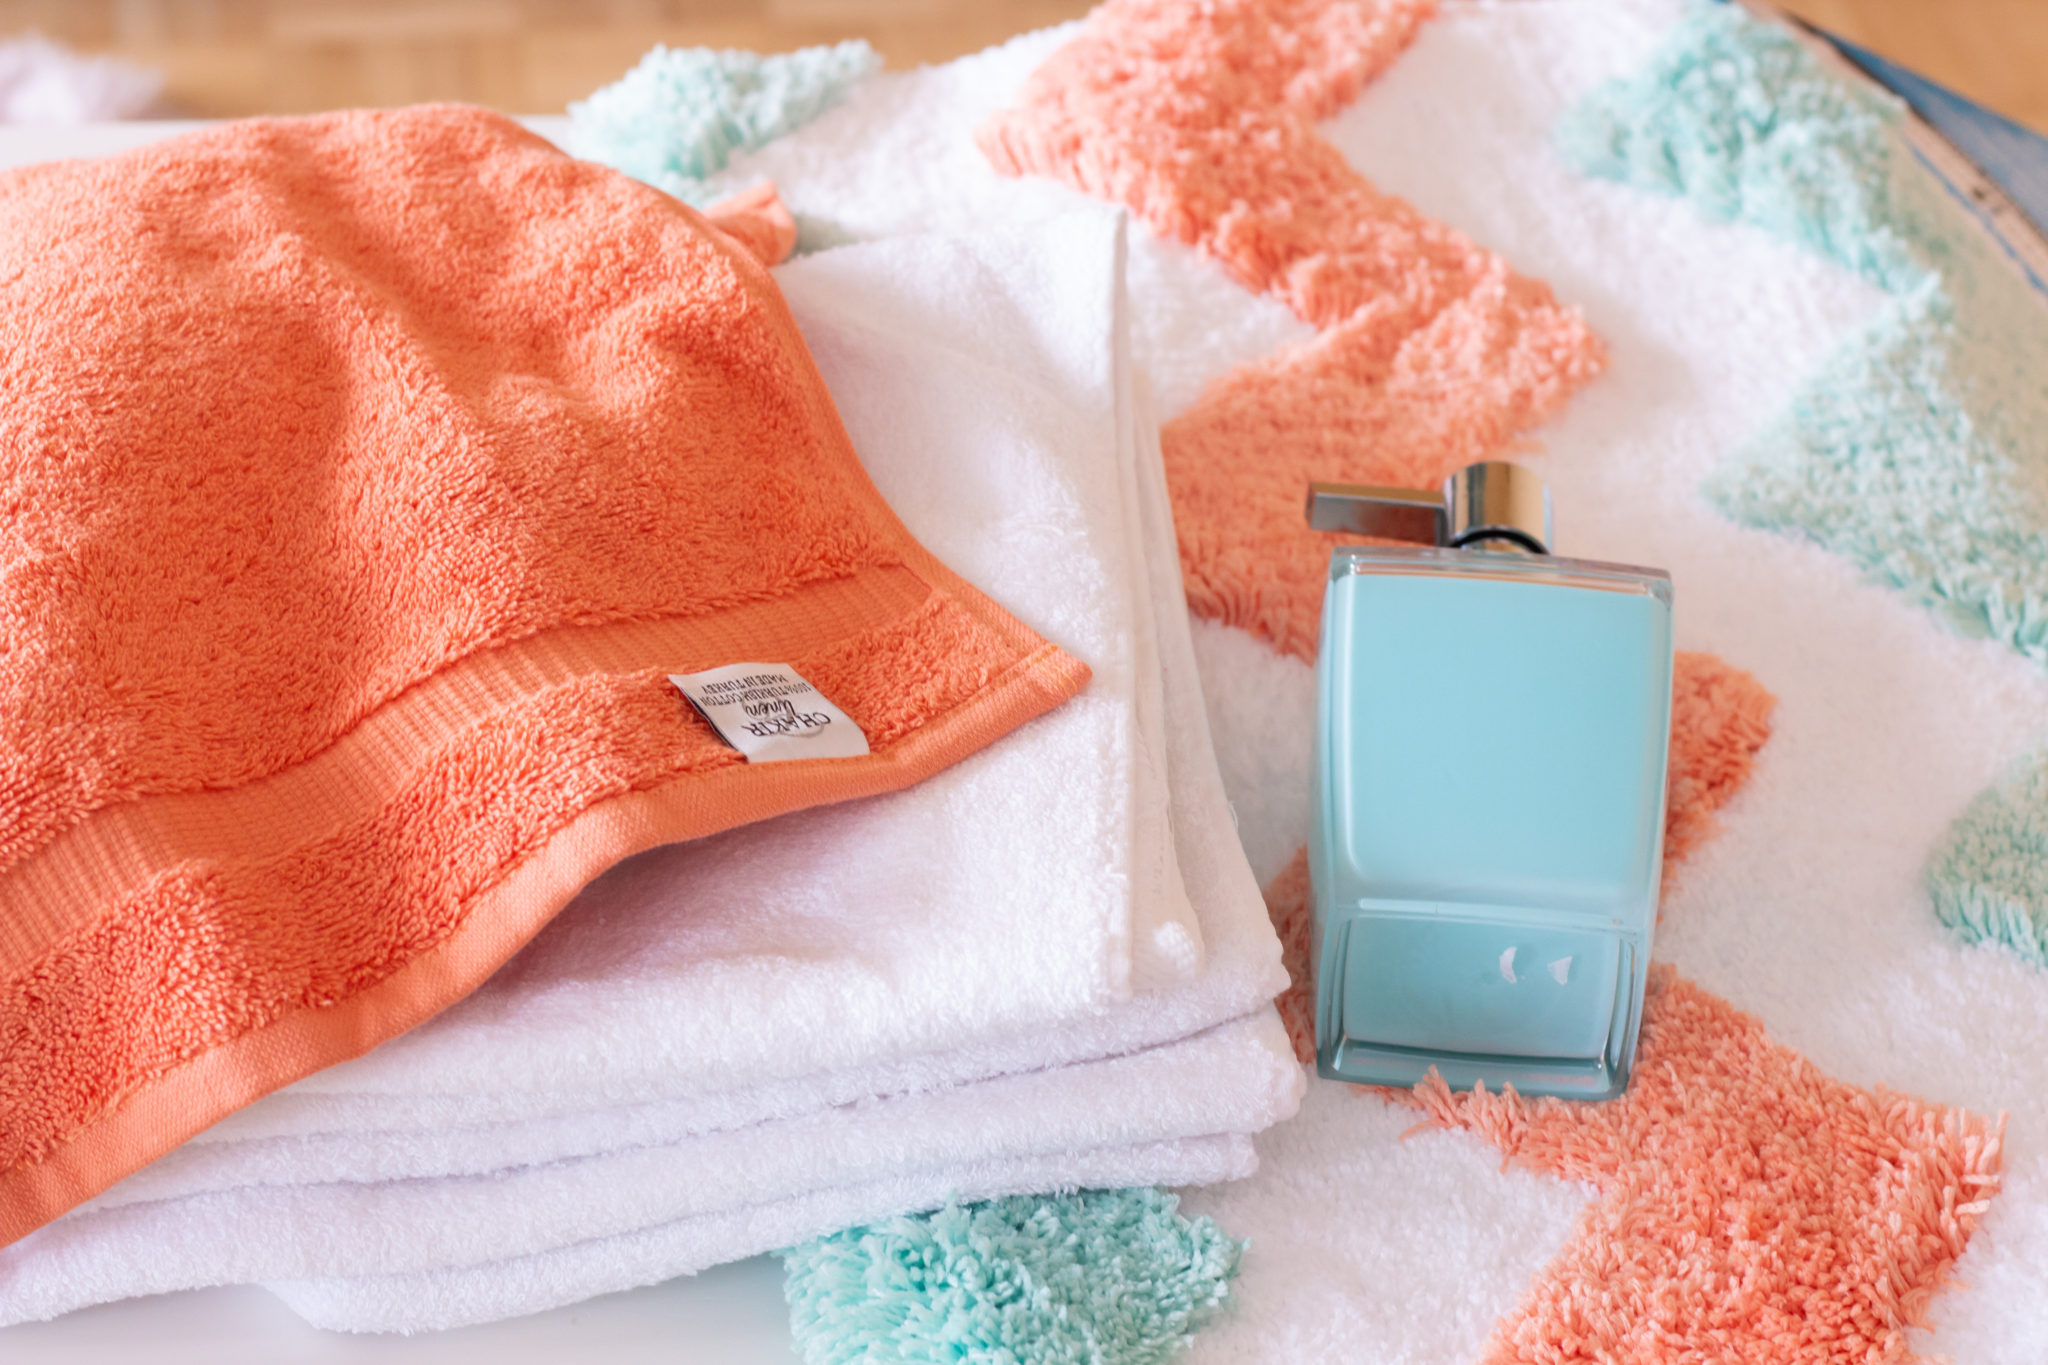 5 Simple and Inexpensive Ways to Make your Bathroom Look Better